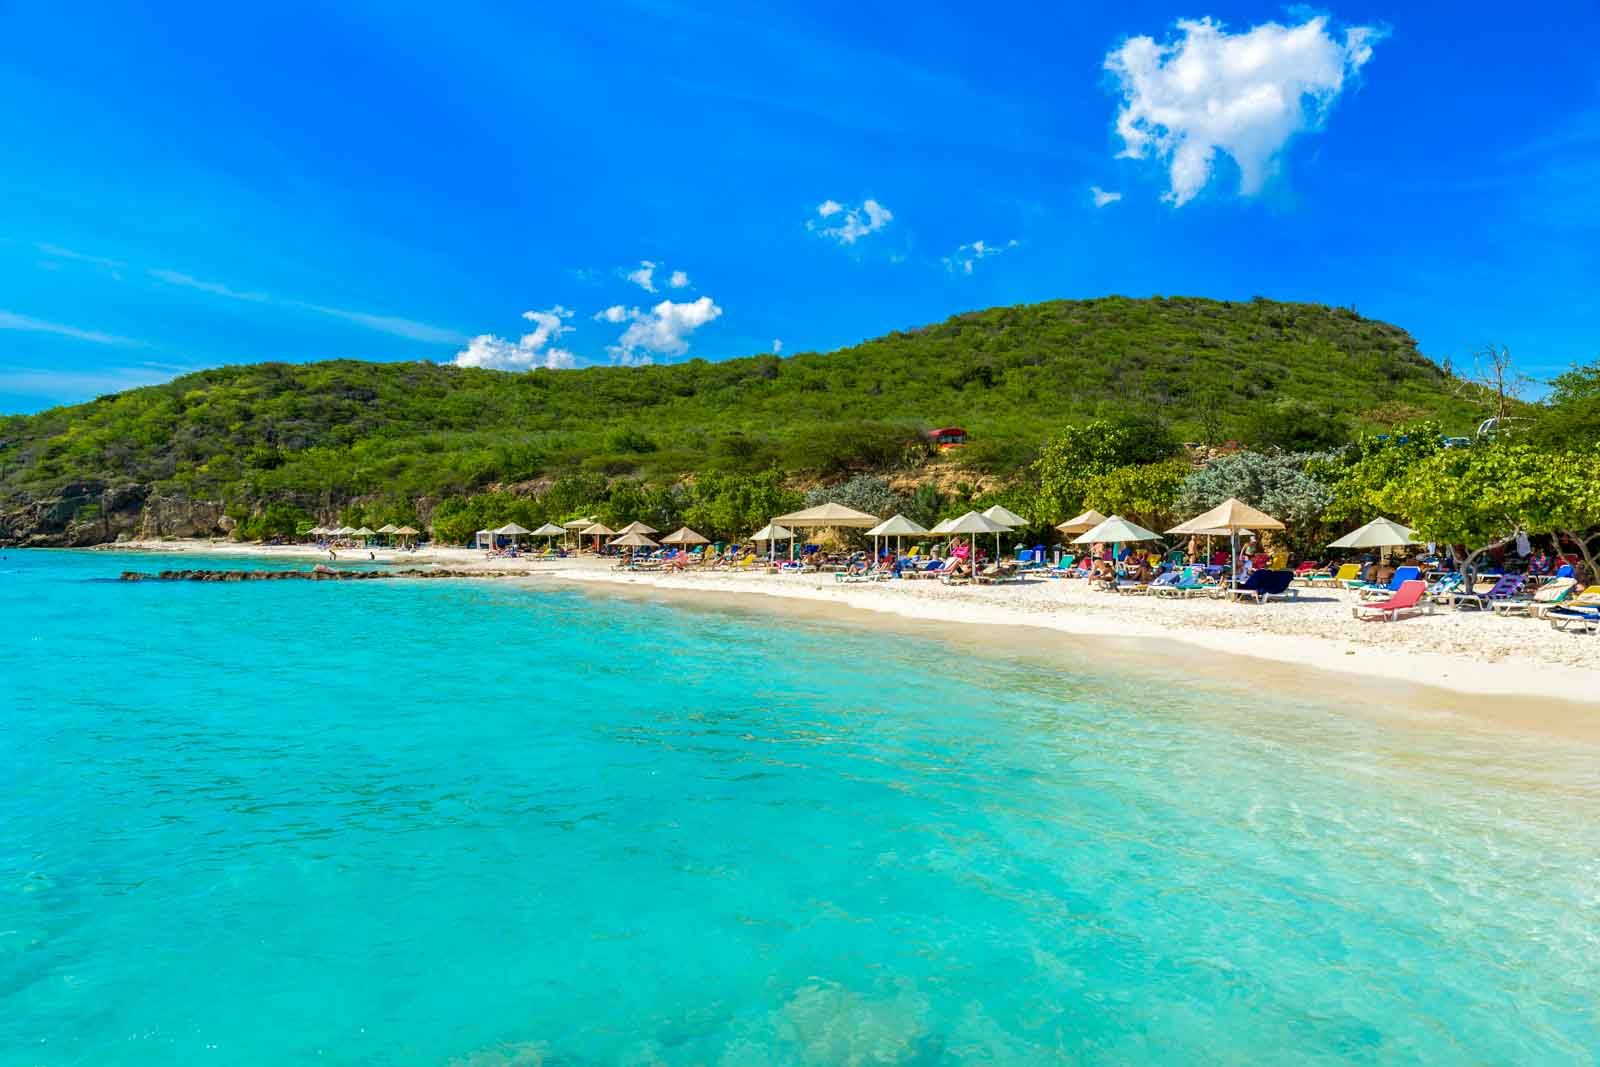 Photo of Playa PortoMari in Curaçao, showing beach with beach chairs and umbrellas and clear ocean water